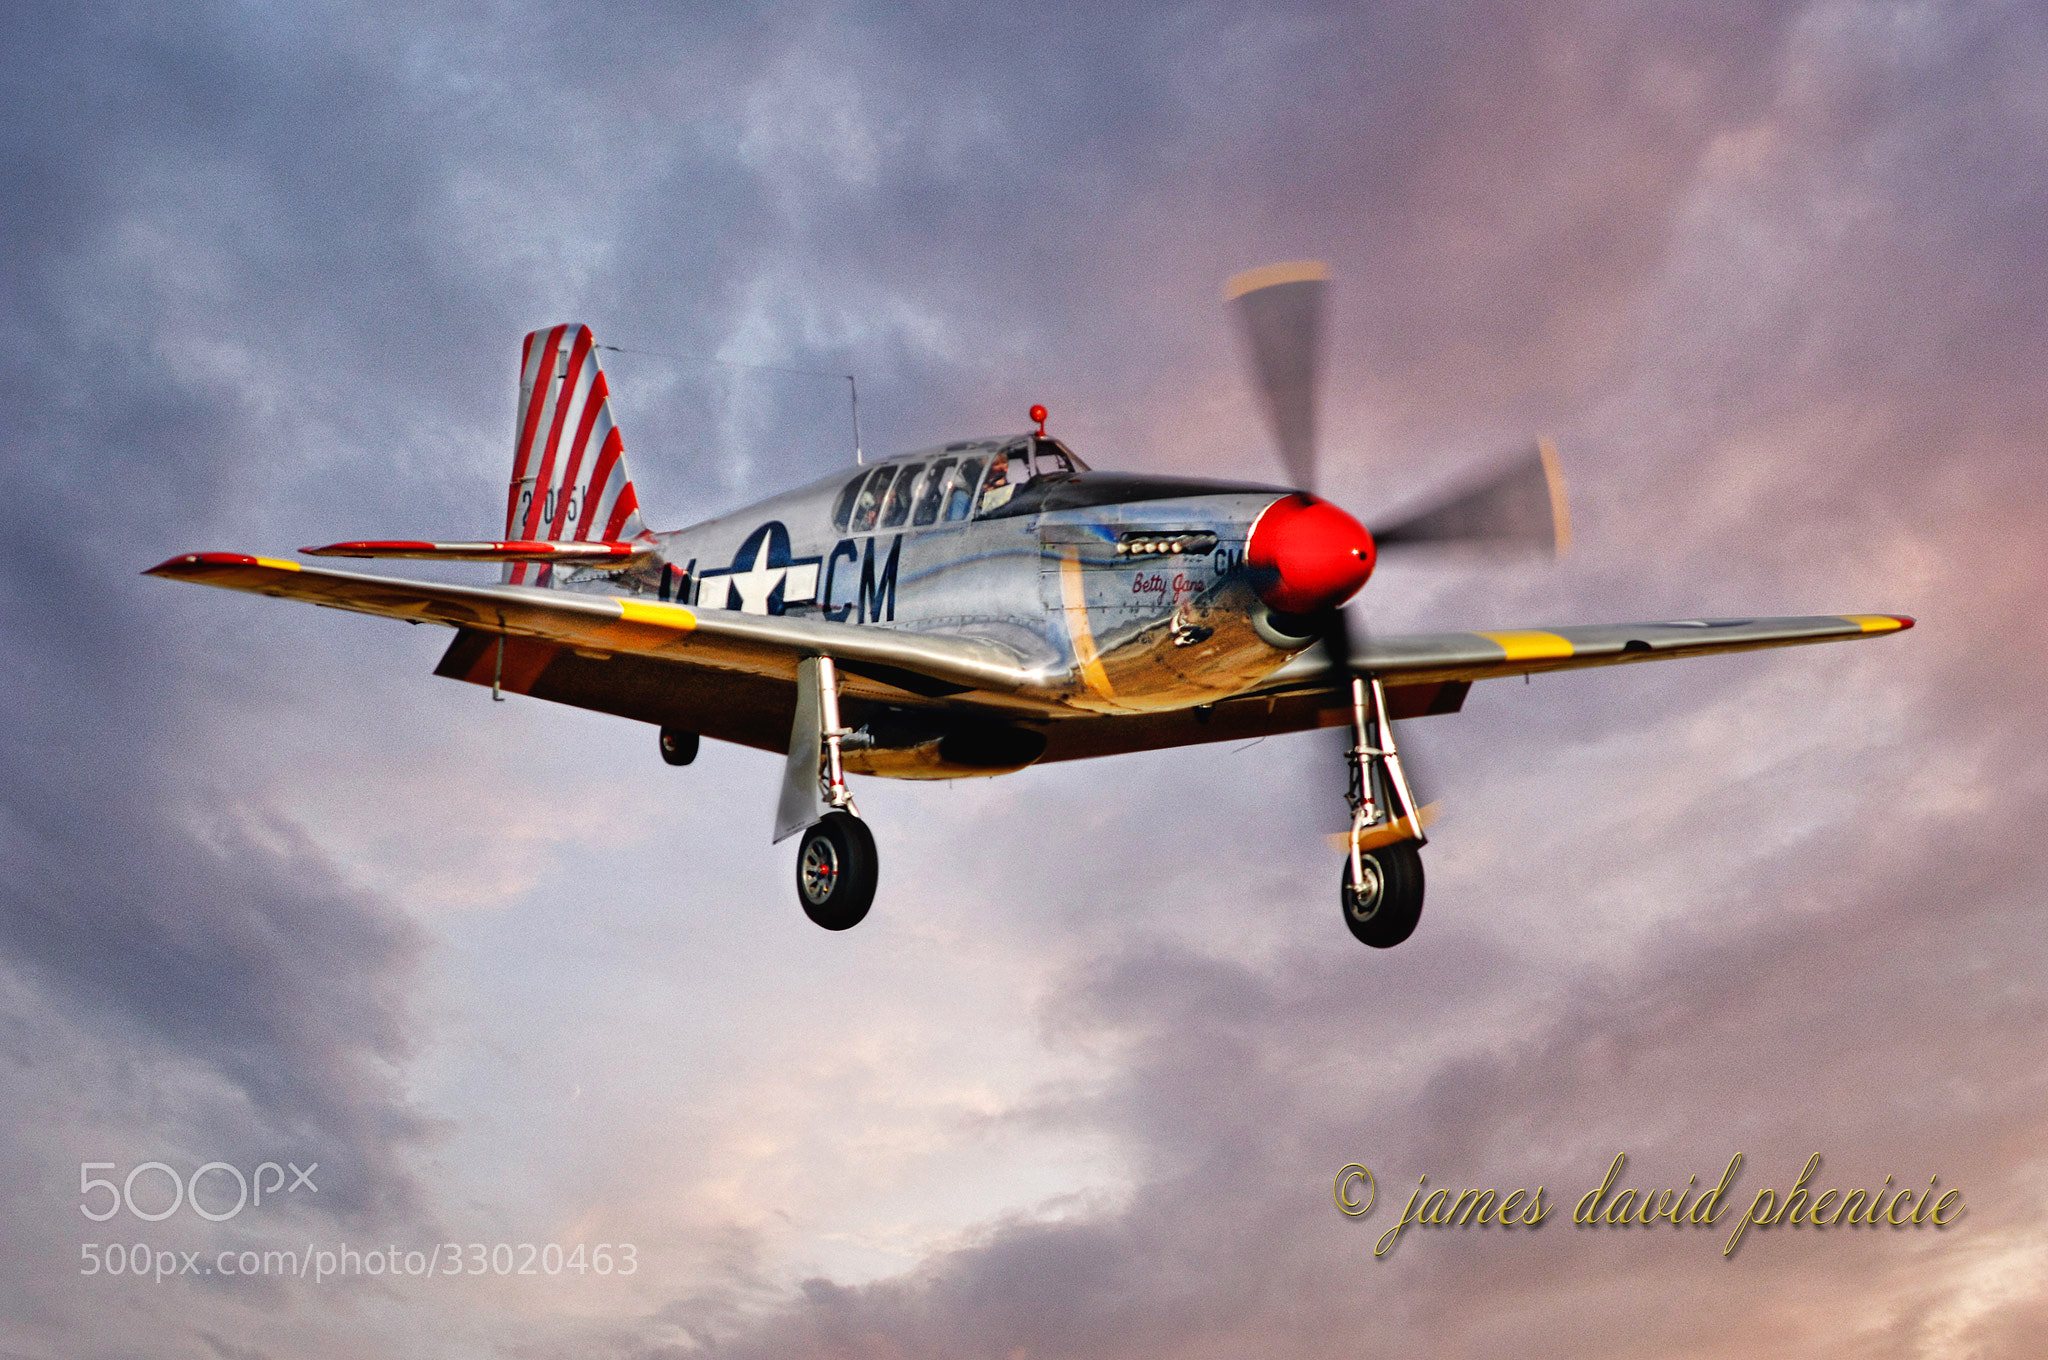 Photograph Aircraft Series: Betty Jane by James David Phenicie on 500px